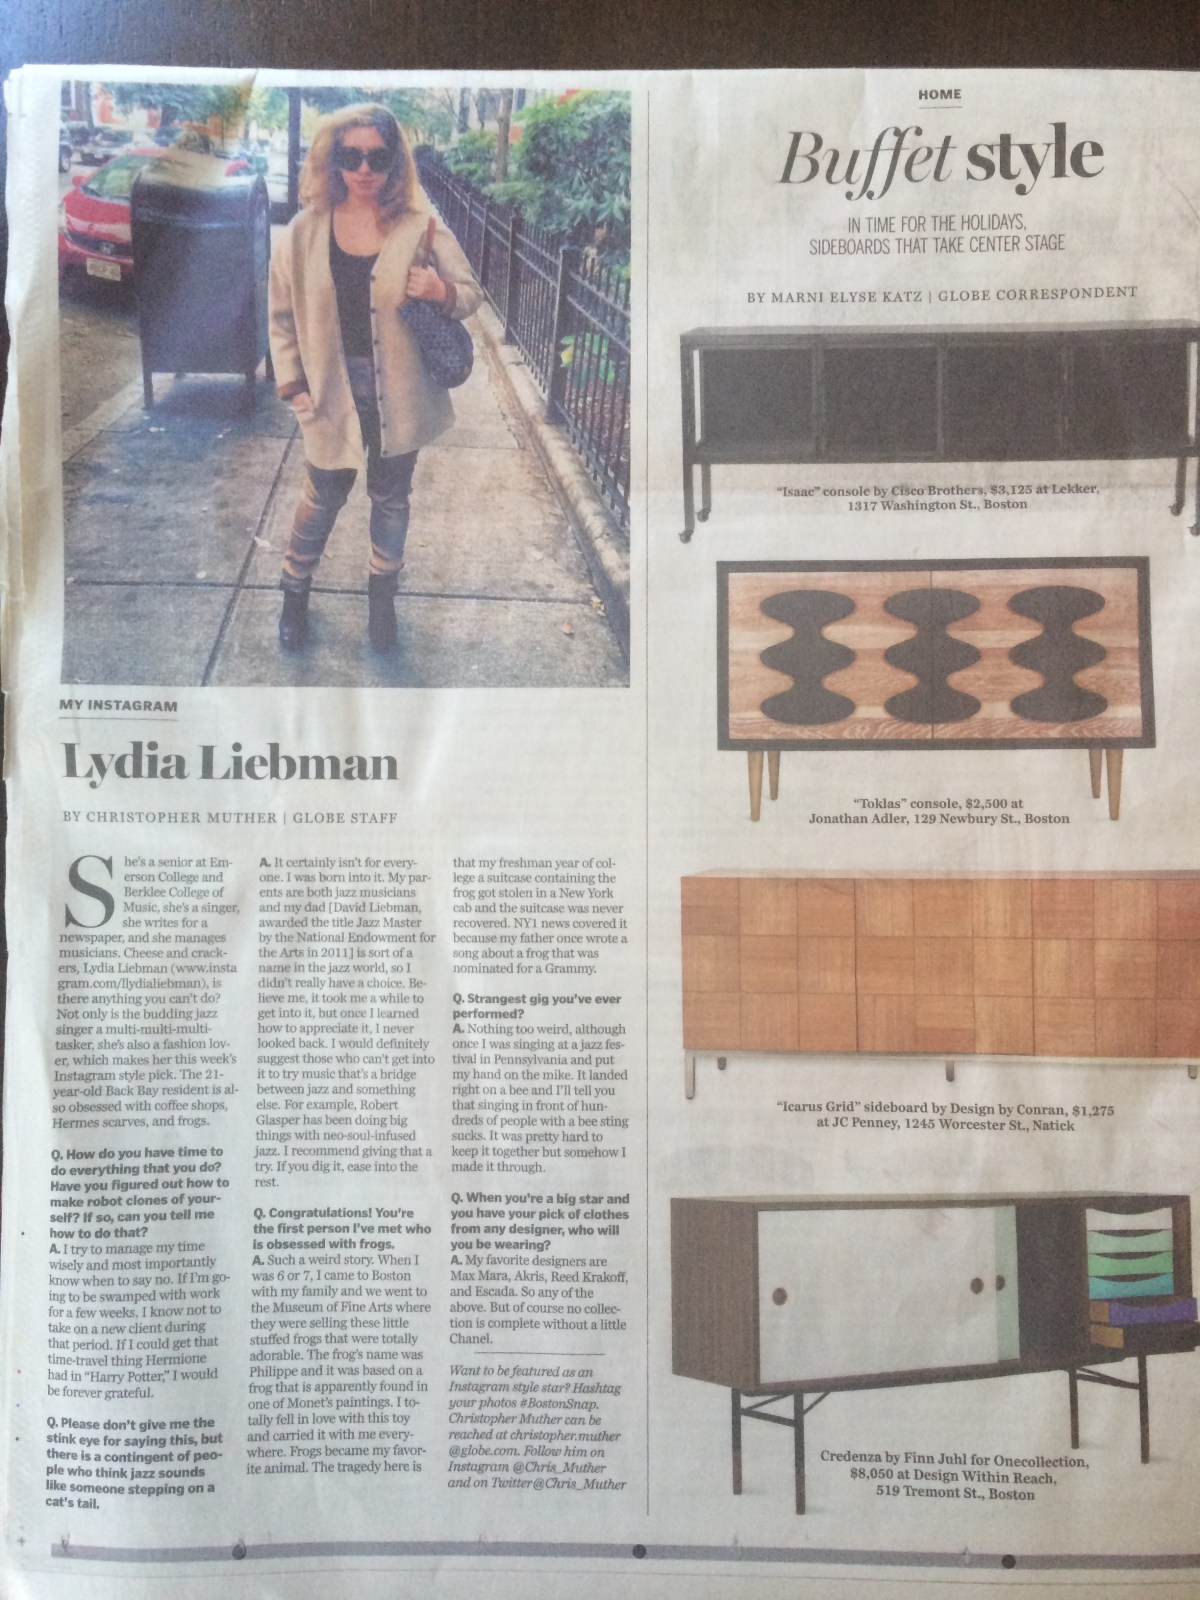 The Boston Globe, 11/2013 Full Article here: http://www.bostonglobe.com/lifestyle/style/2013/11/09/instagram-lydia-liebman/44eWYj0TOklvgYERDjQipI/story.html